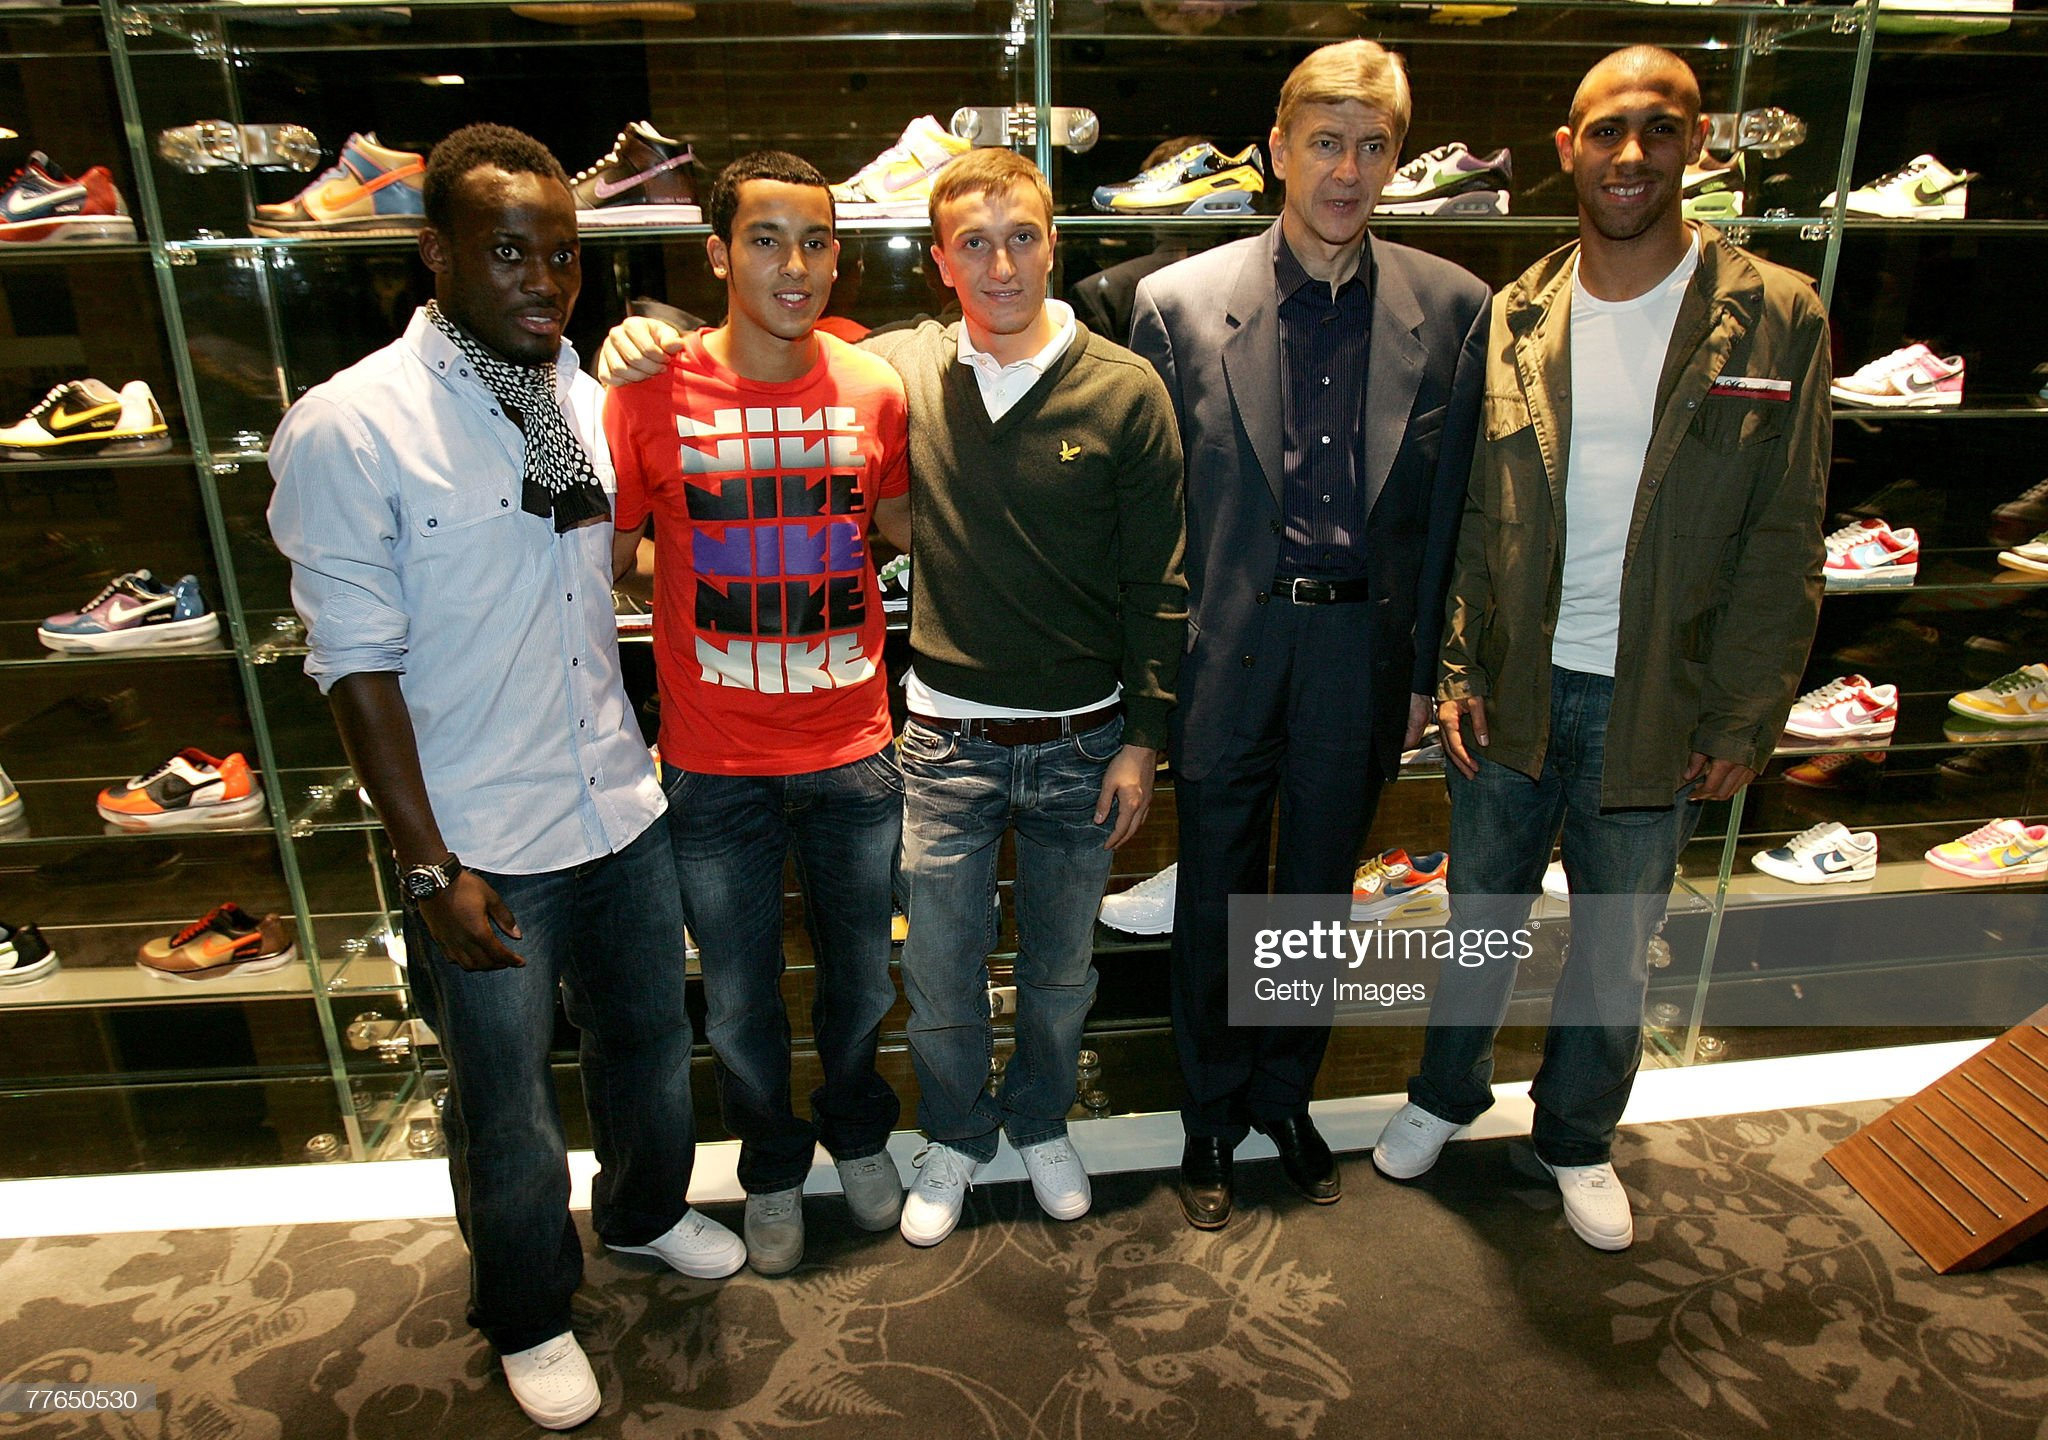 ¿Cuánto mide Mark Noble? - Altura - Real height Michael-essien-theo-walcott-mark-noble-arsene-wenger-and-anton-pose-picture-id77650530?s=2048x2048